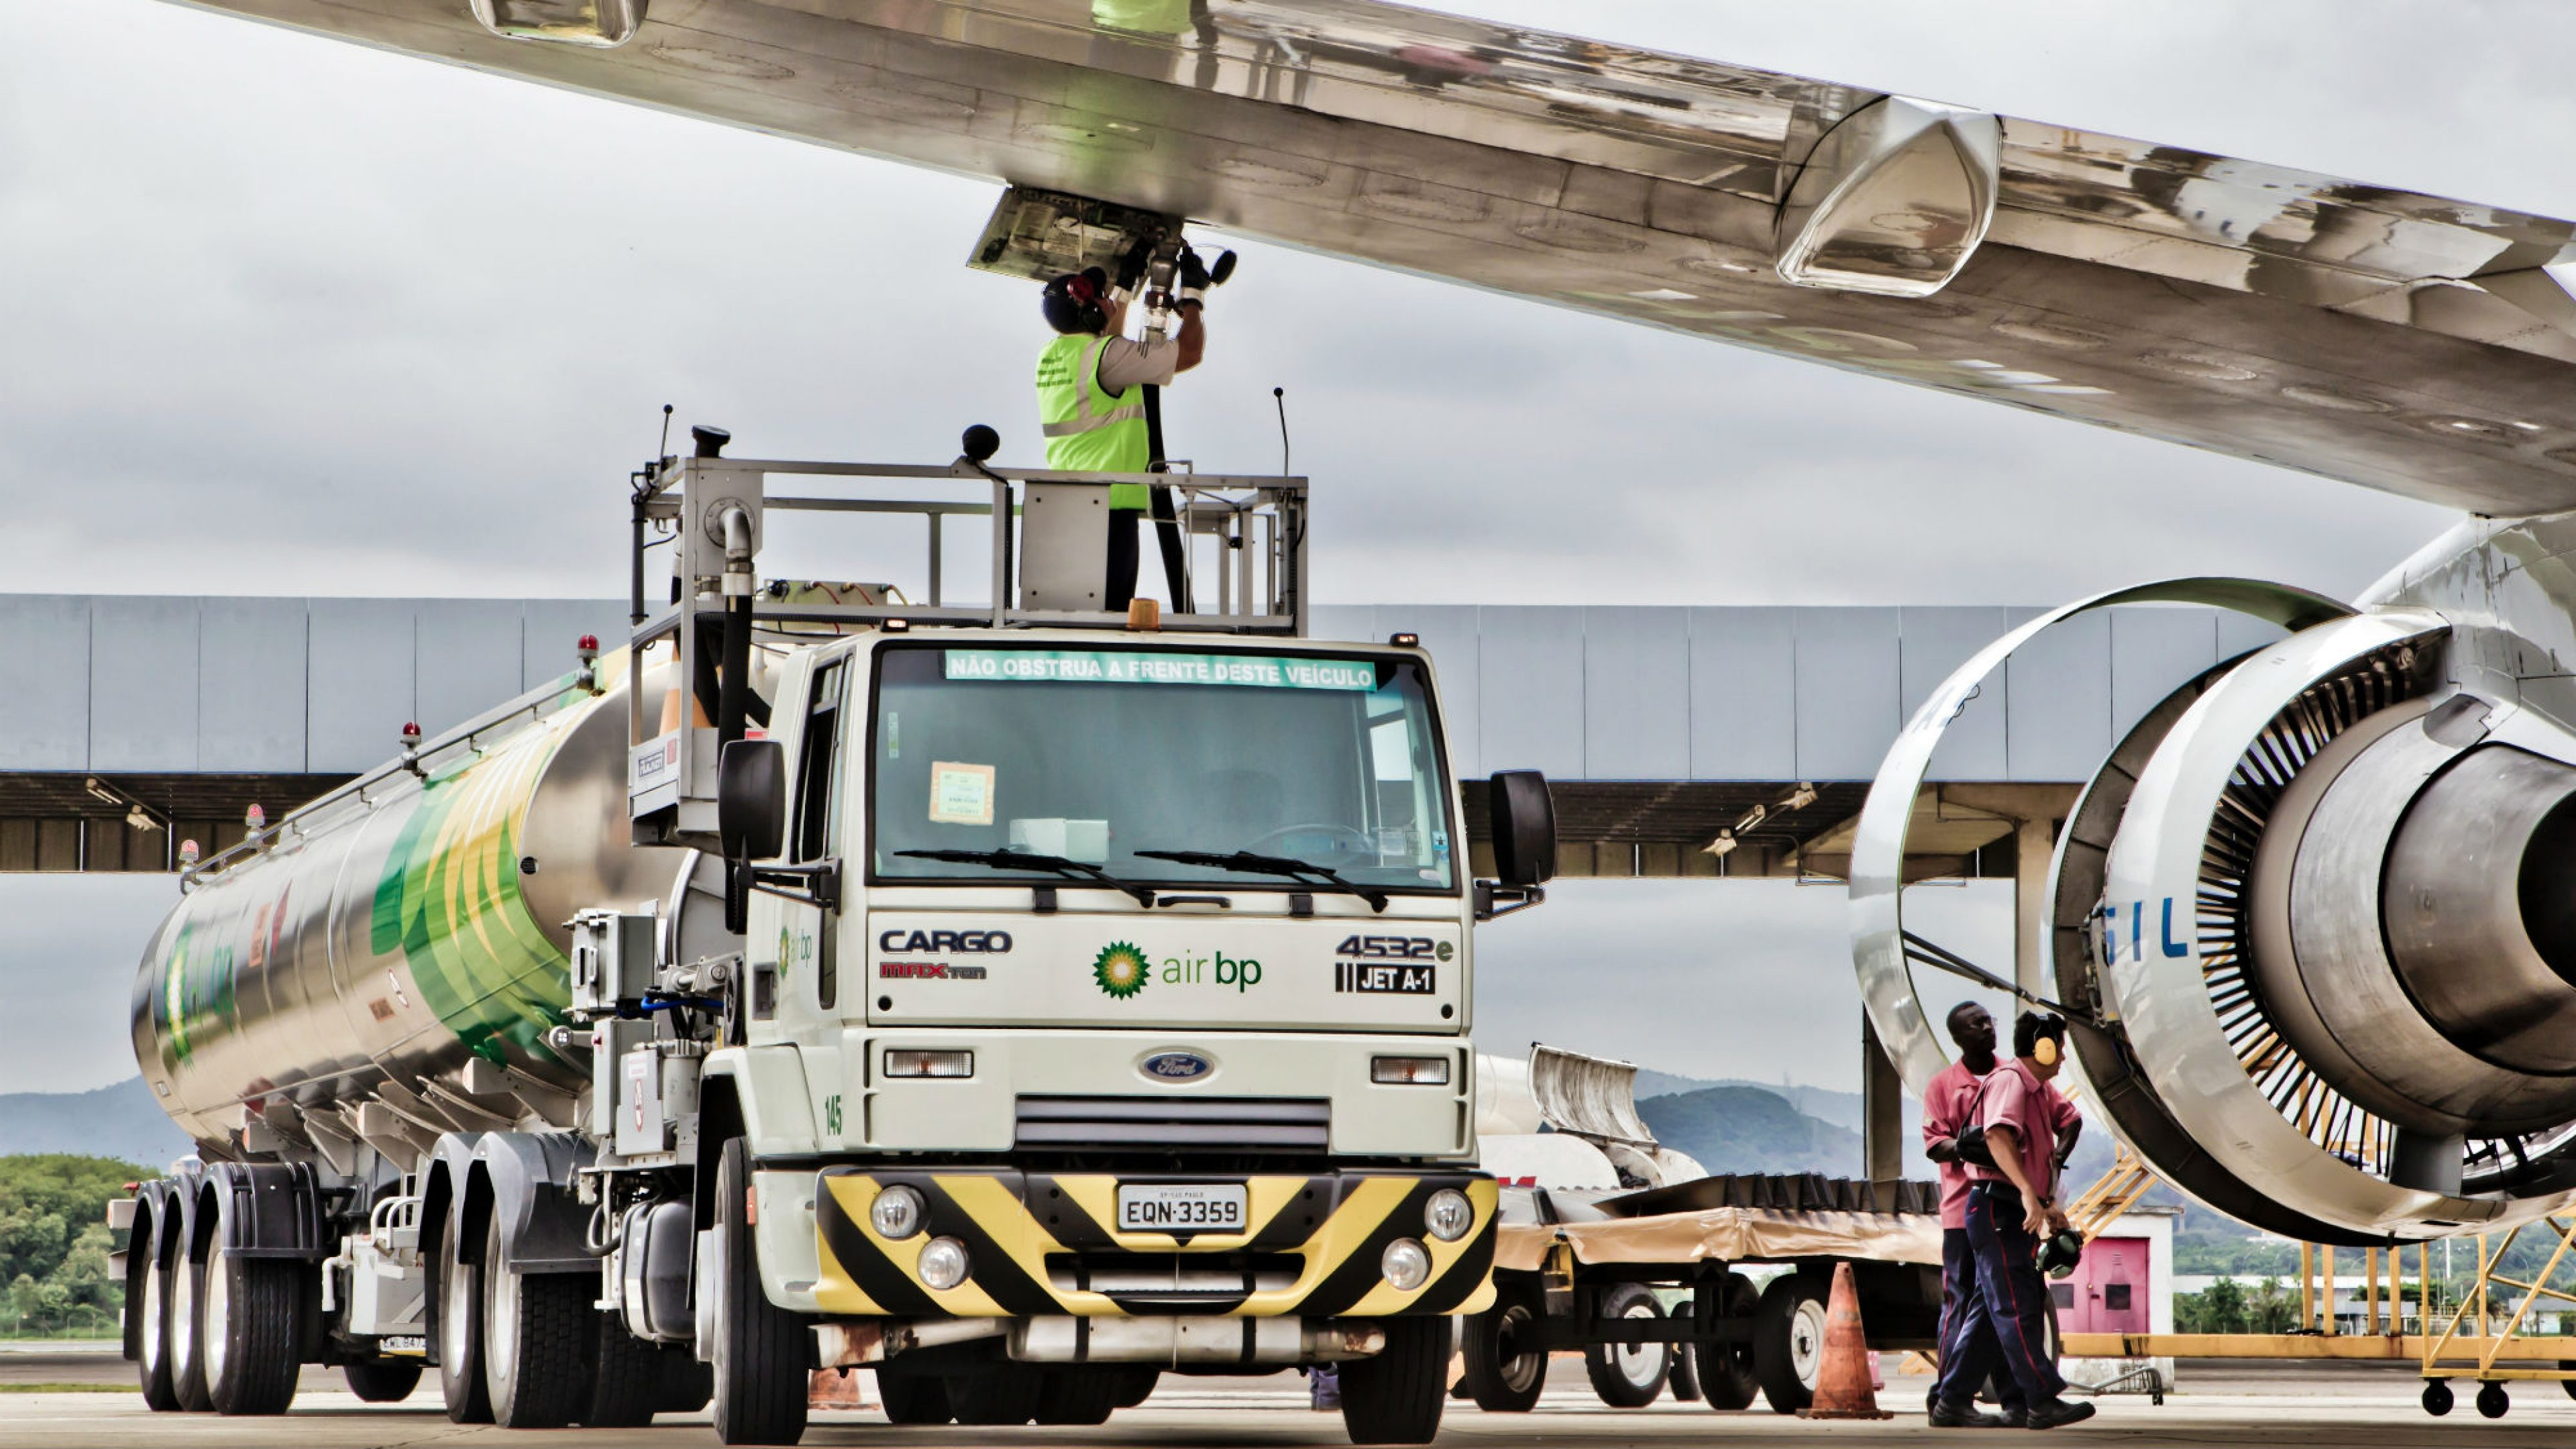 An Air BP tanker driver under the wing of an A320 aircraft at Galeao Airport in Rio de Janeiro, Brazil